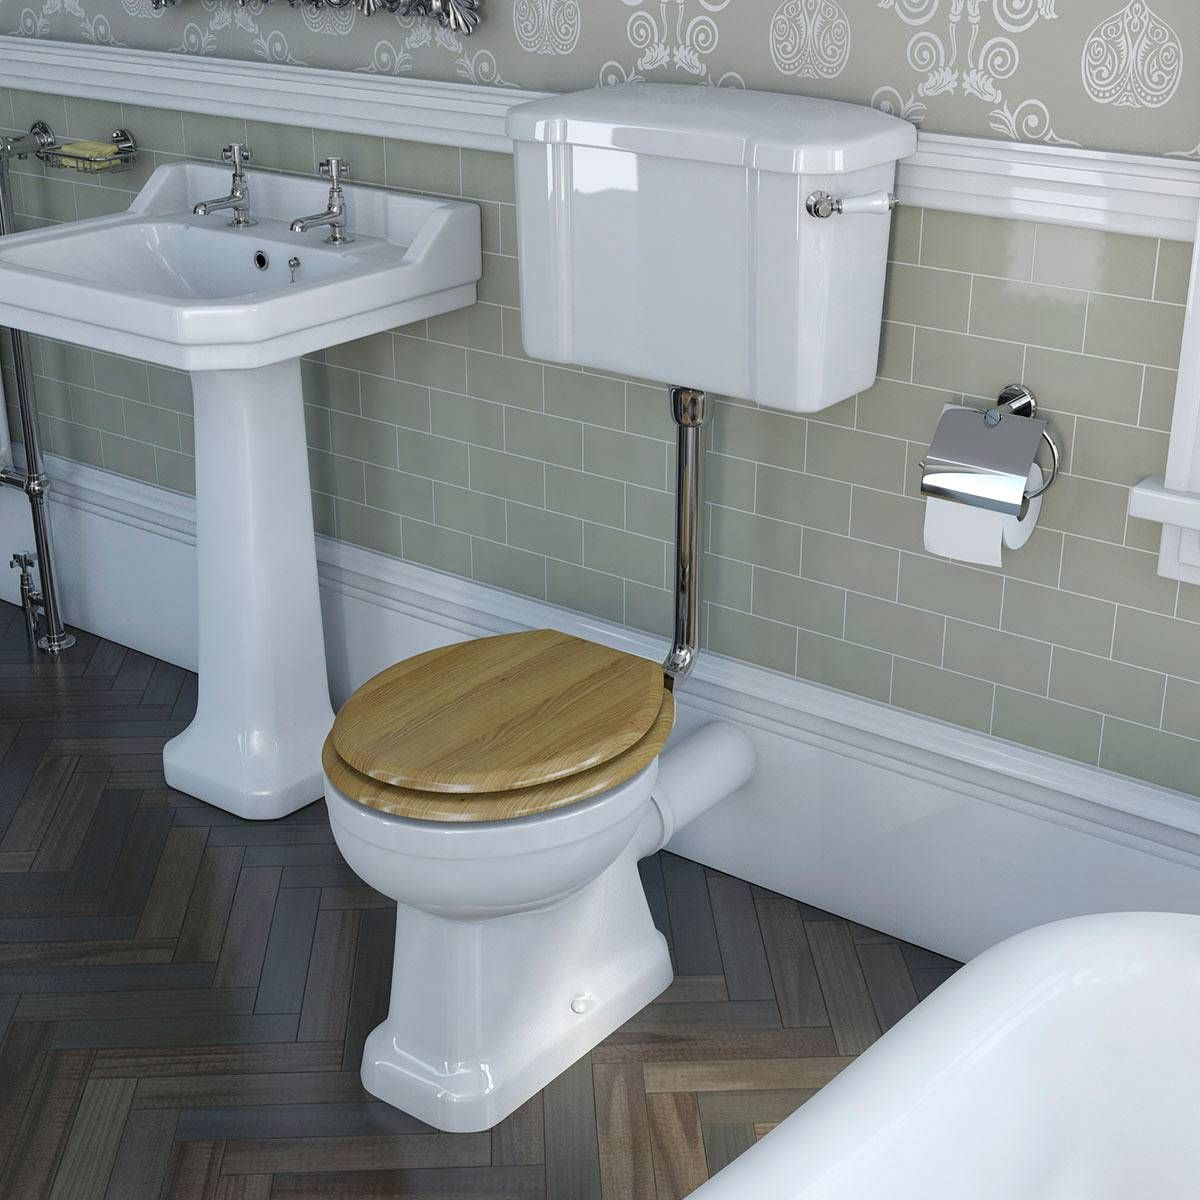 Bathroom Accessories Victoria Plumb camberley low level toilet inc luxury solid oak seat - victoria